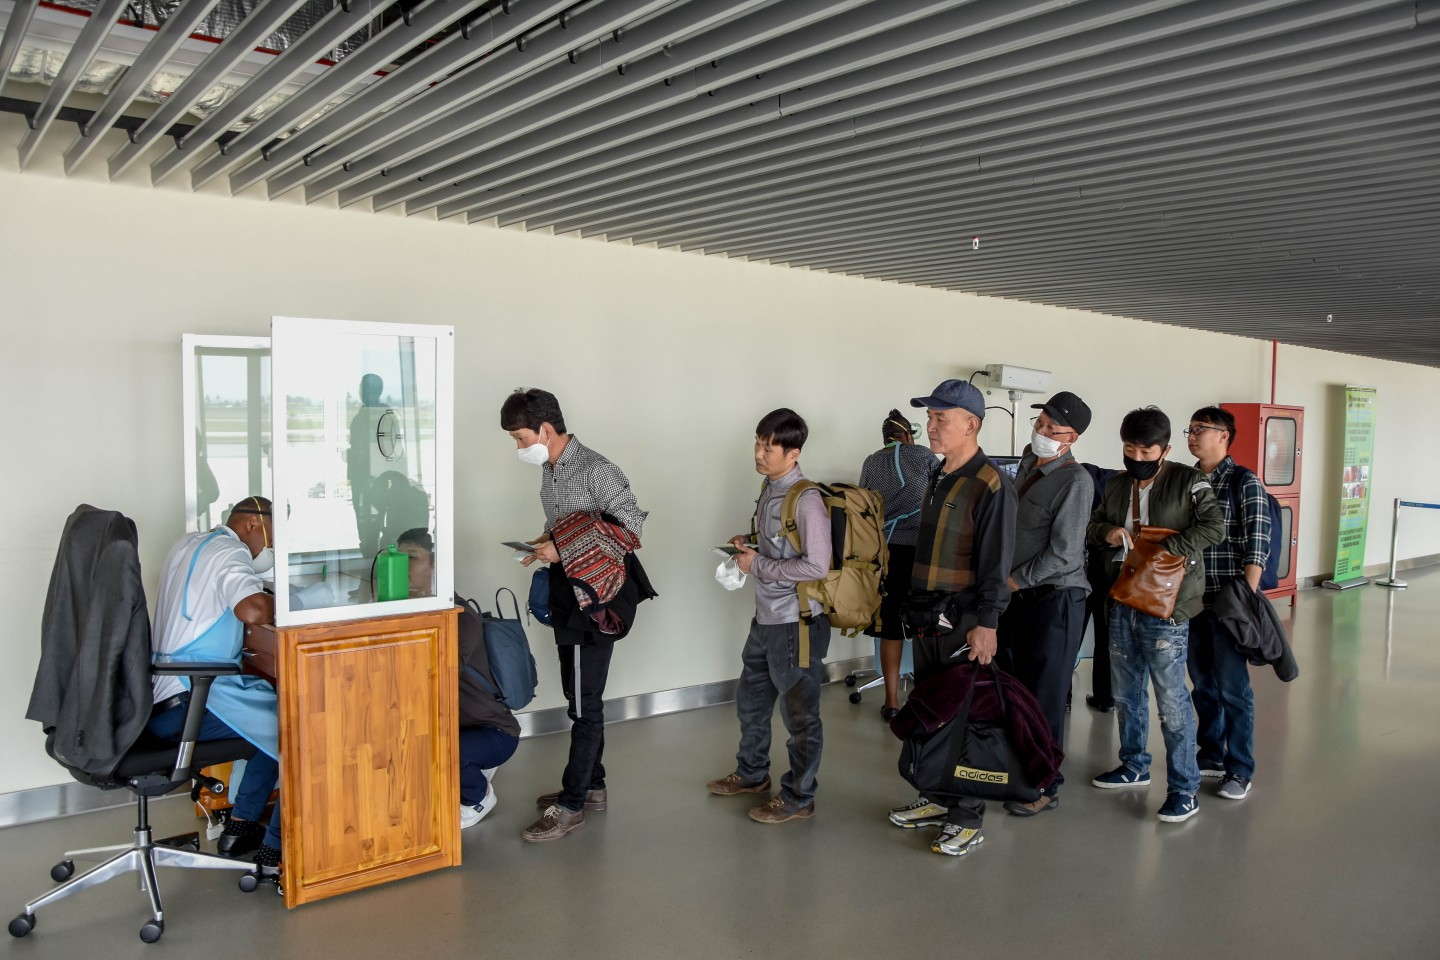 Passengers arriving from China wait in line to be checked by health officials at the Julius Nyerere International Airport in Dar Es Salaam on 29 January 2020. (Ericky Boniphace/AFP)